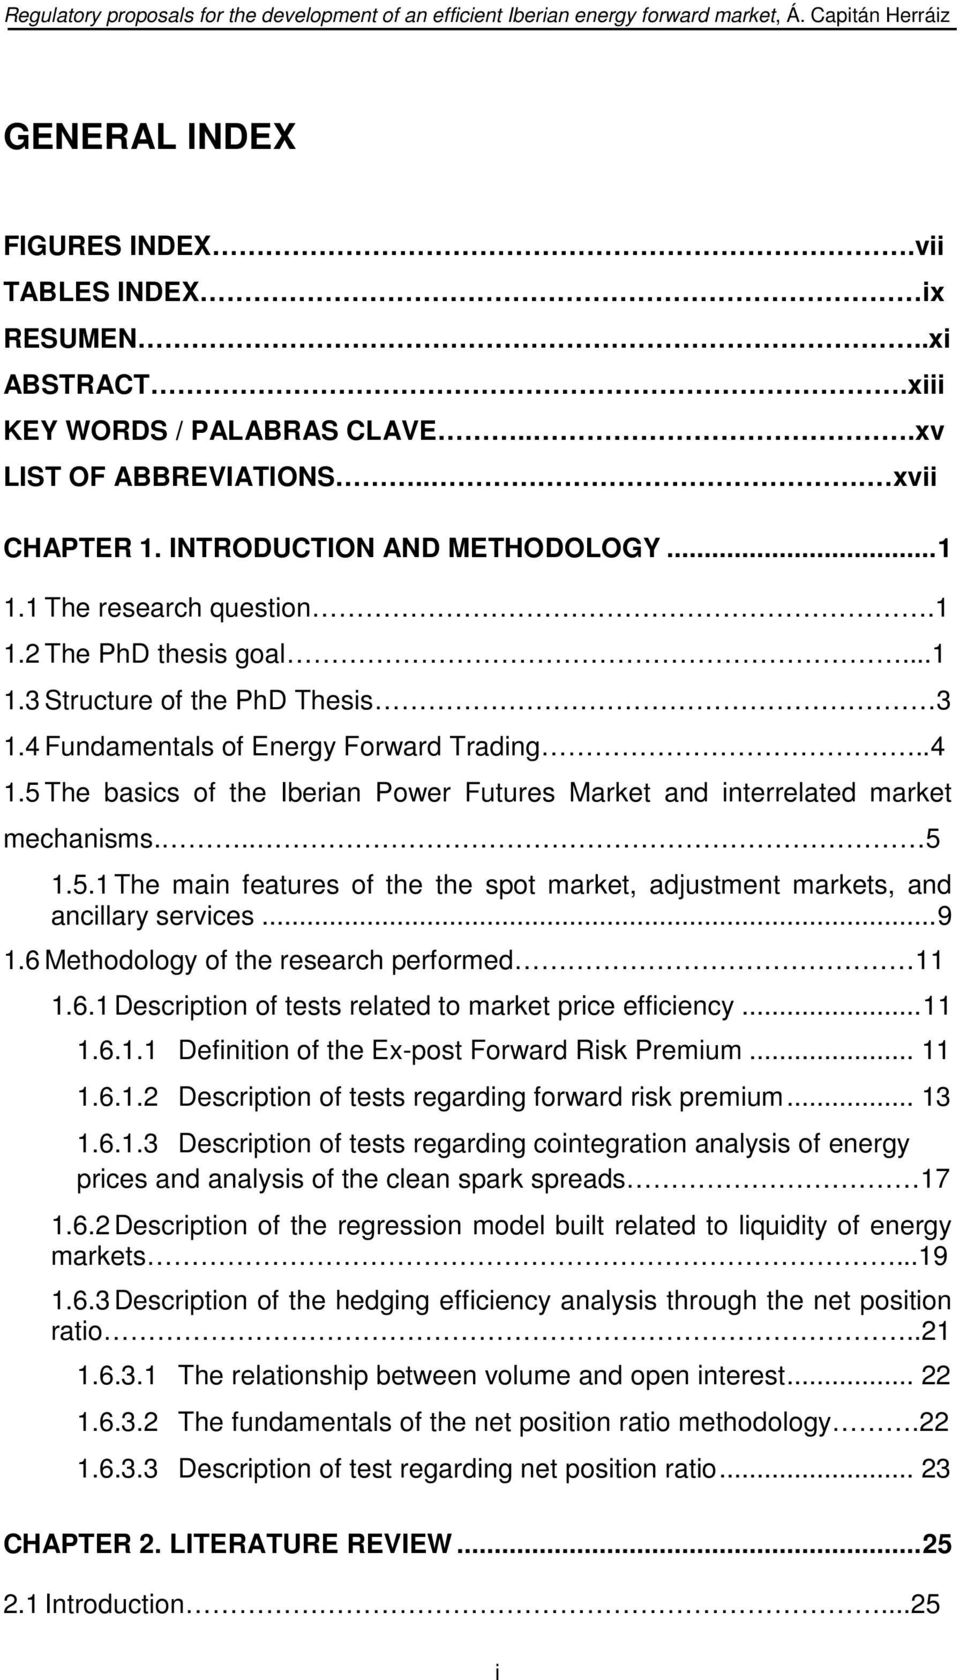 5 The basics of the Iberian Power Futures Market and interrelated market mechanisms... 5 1.5.1 The main features of the the spot market, adjustment markets, and ancillary services... 9 1.